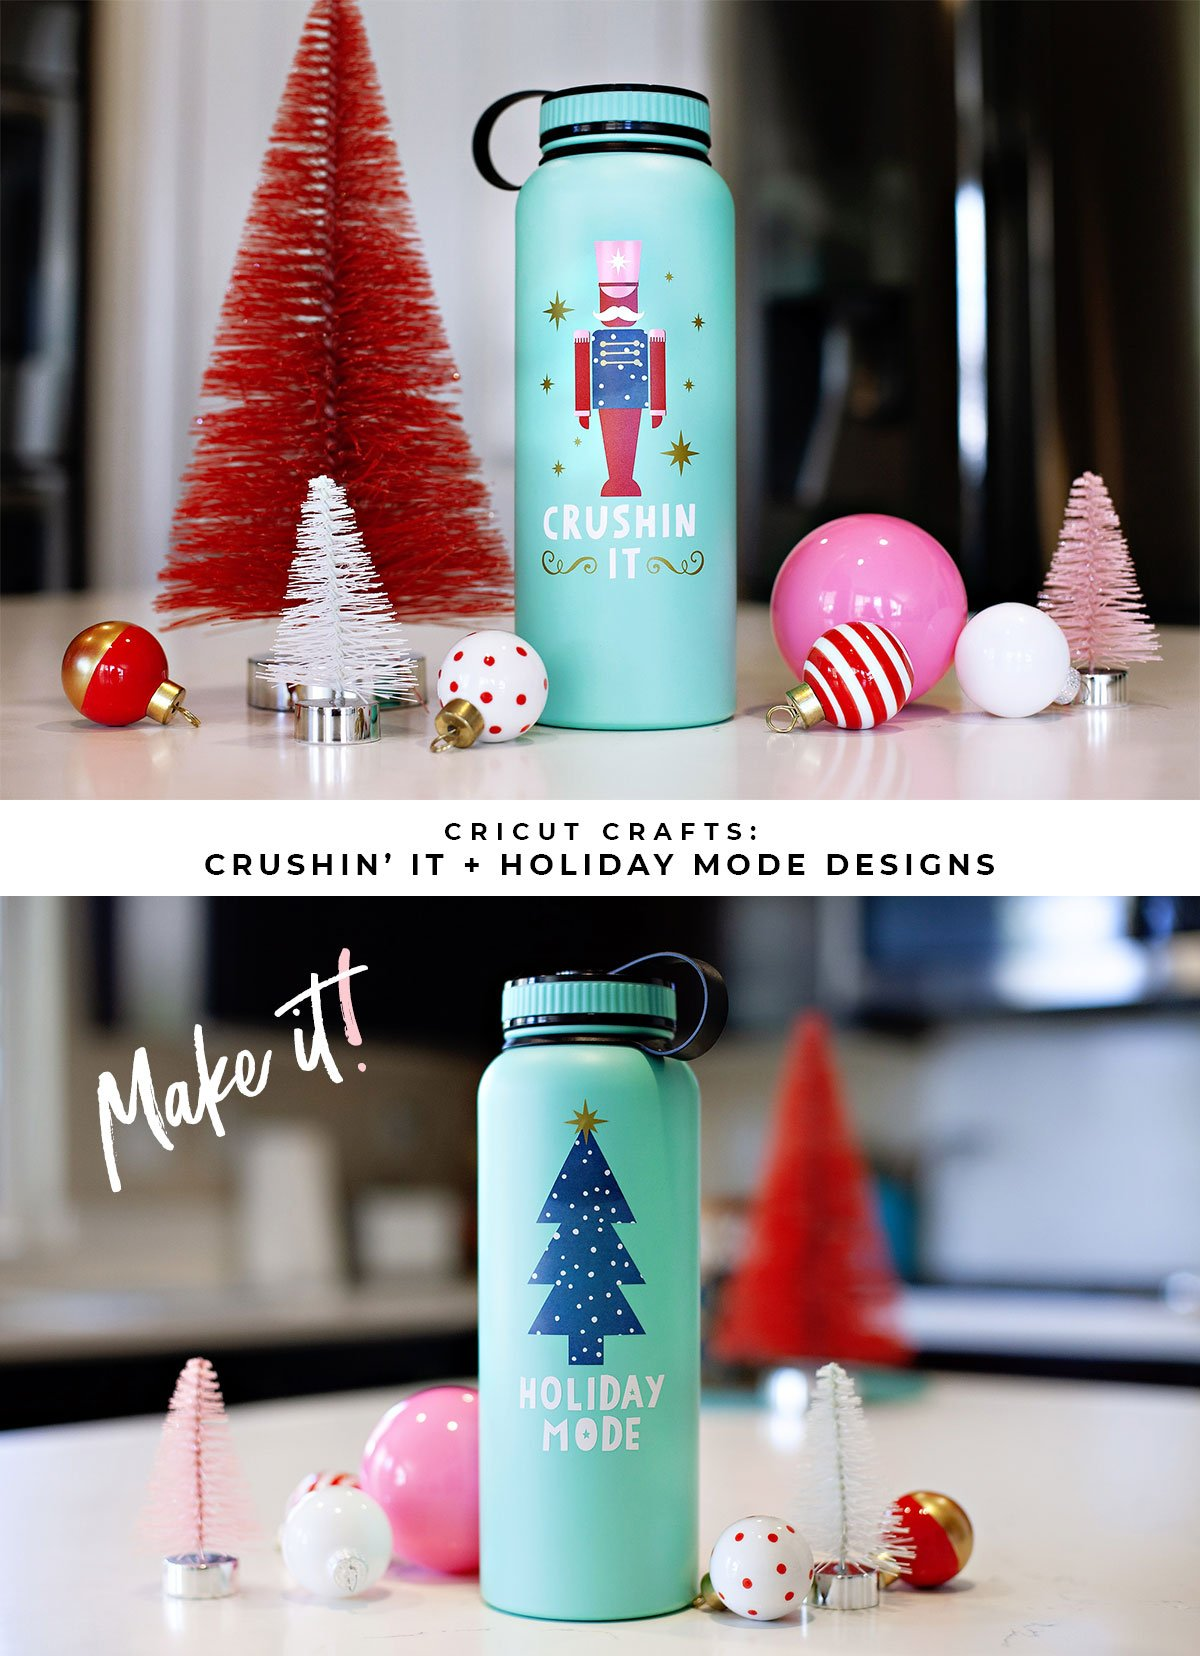 Cricut Crafts: Nutcracker + Holiday Mode Designs